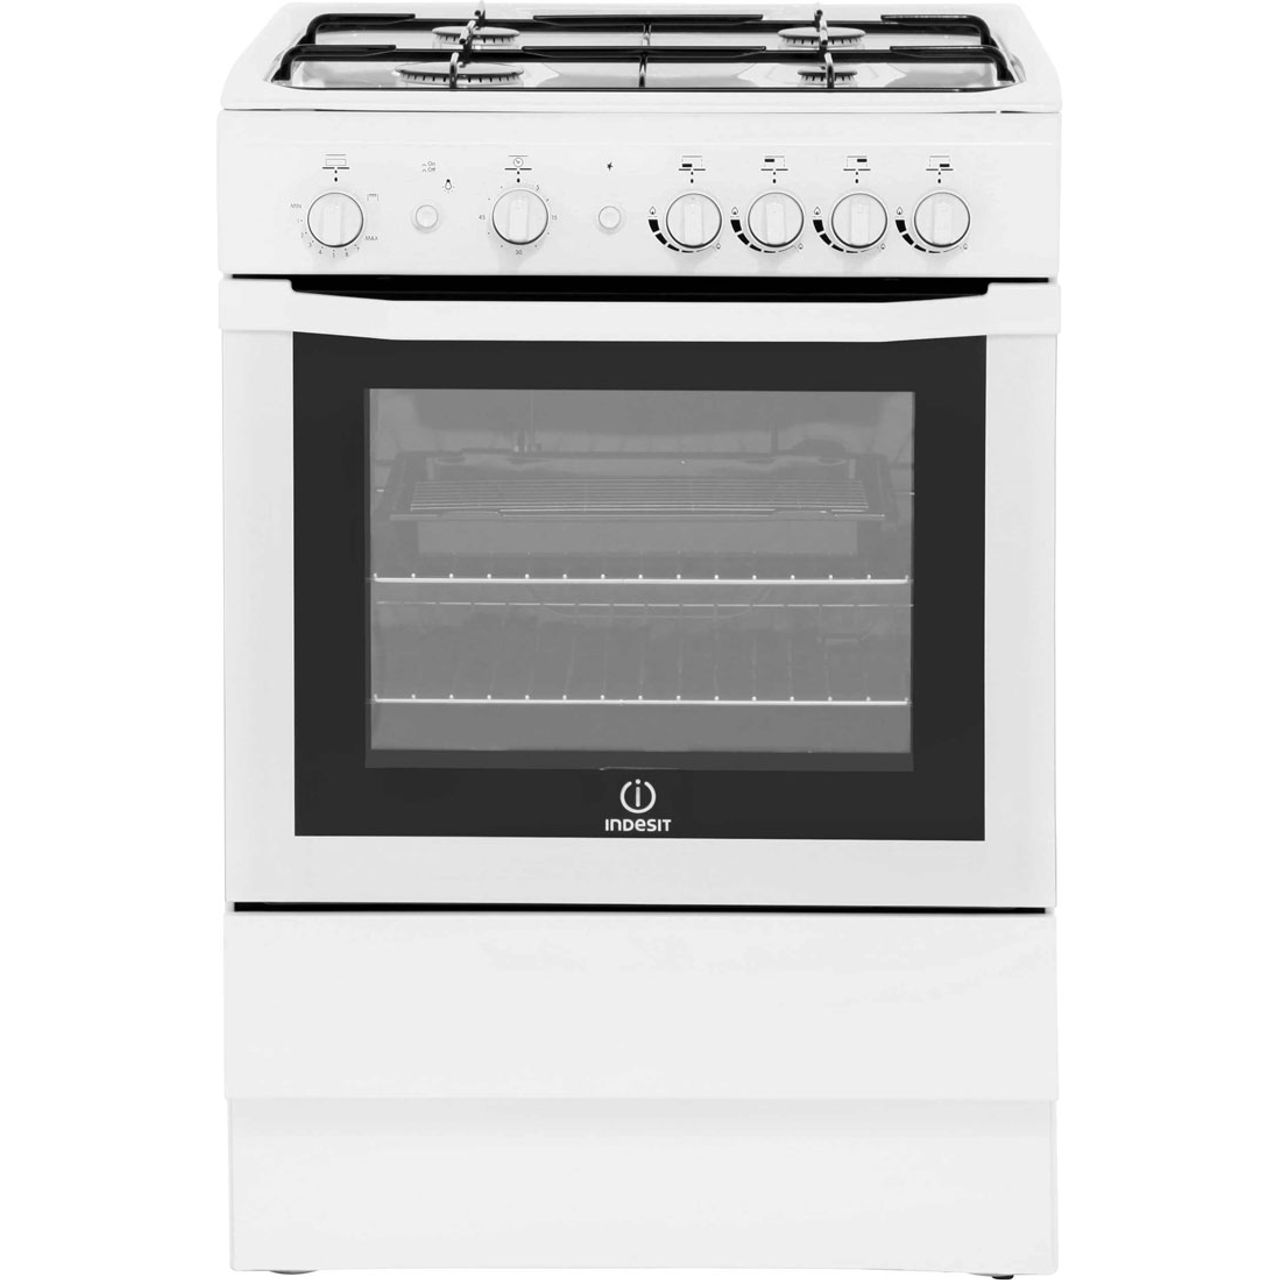 Indesit I6GG1W Free Standing Cooker in White